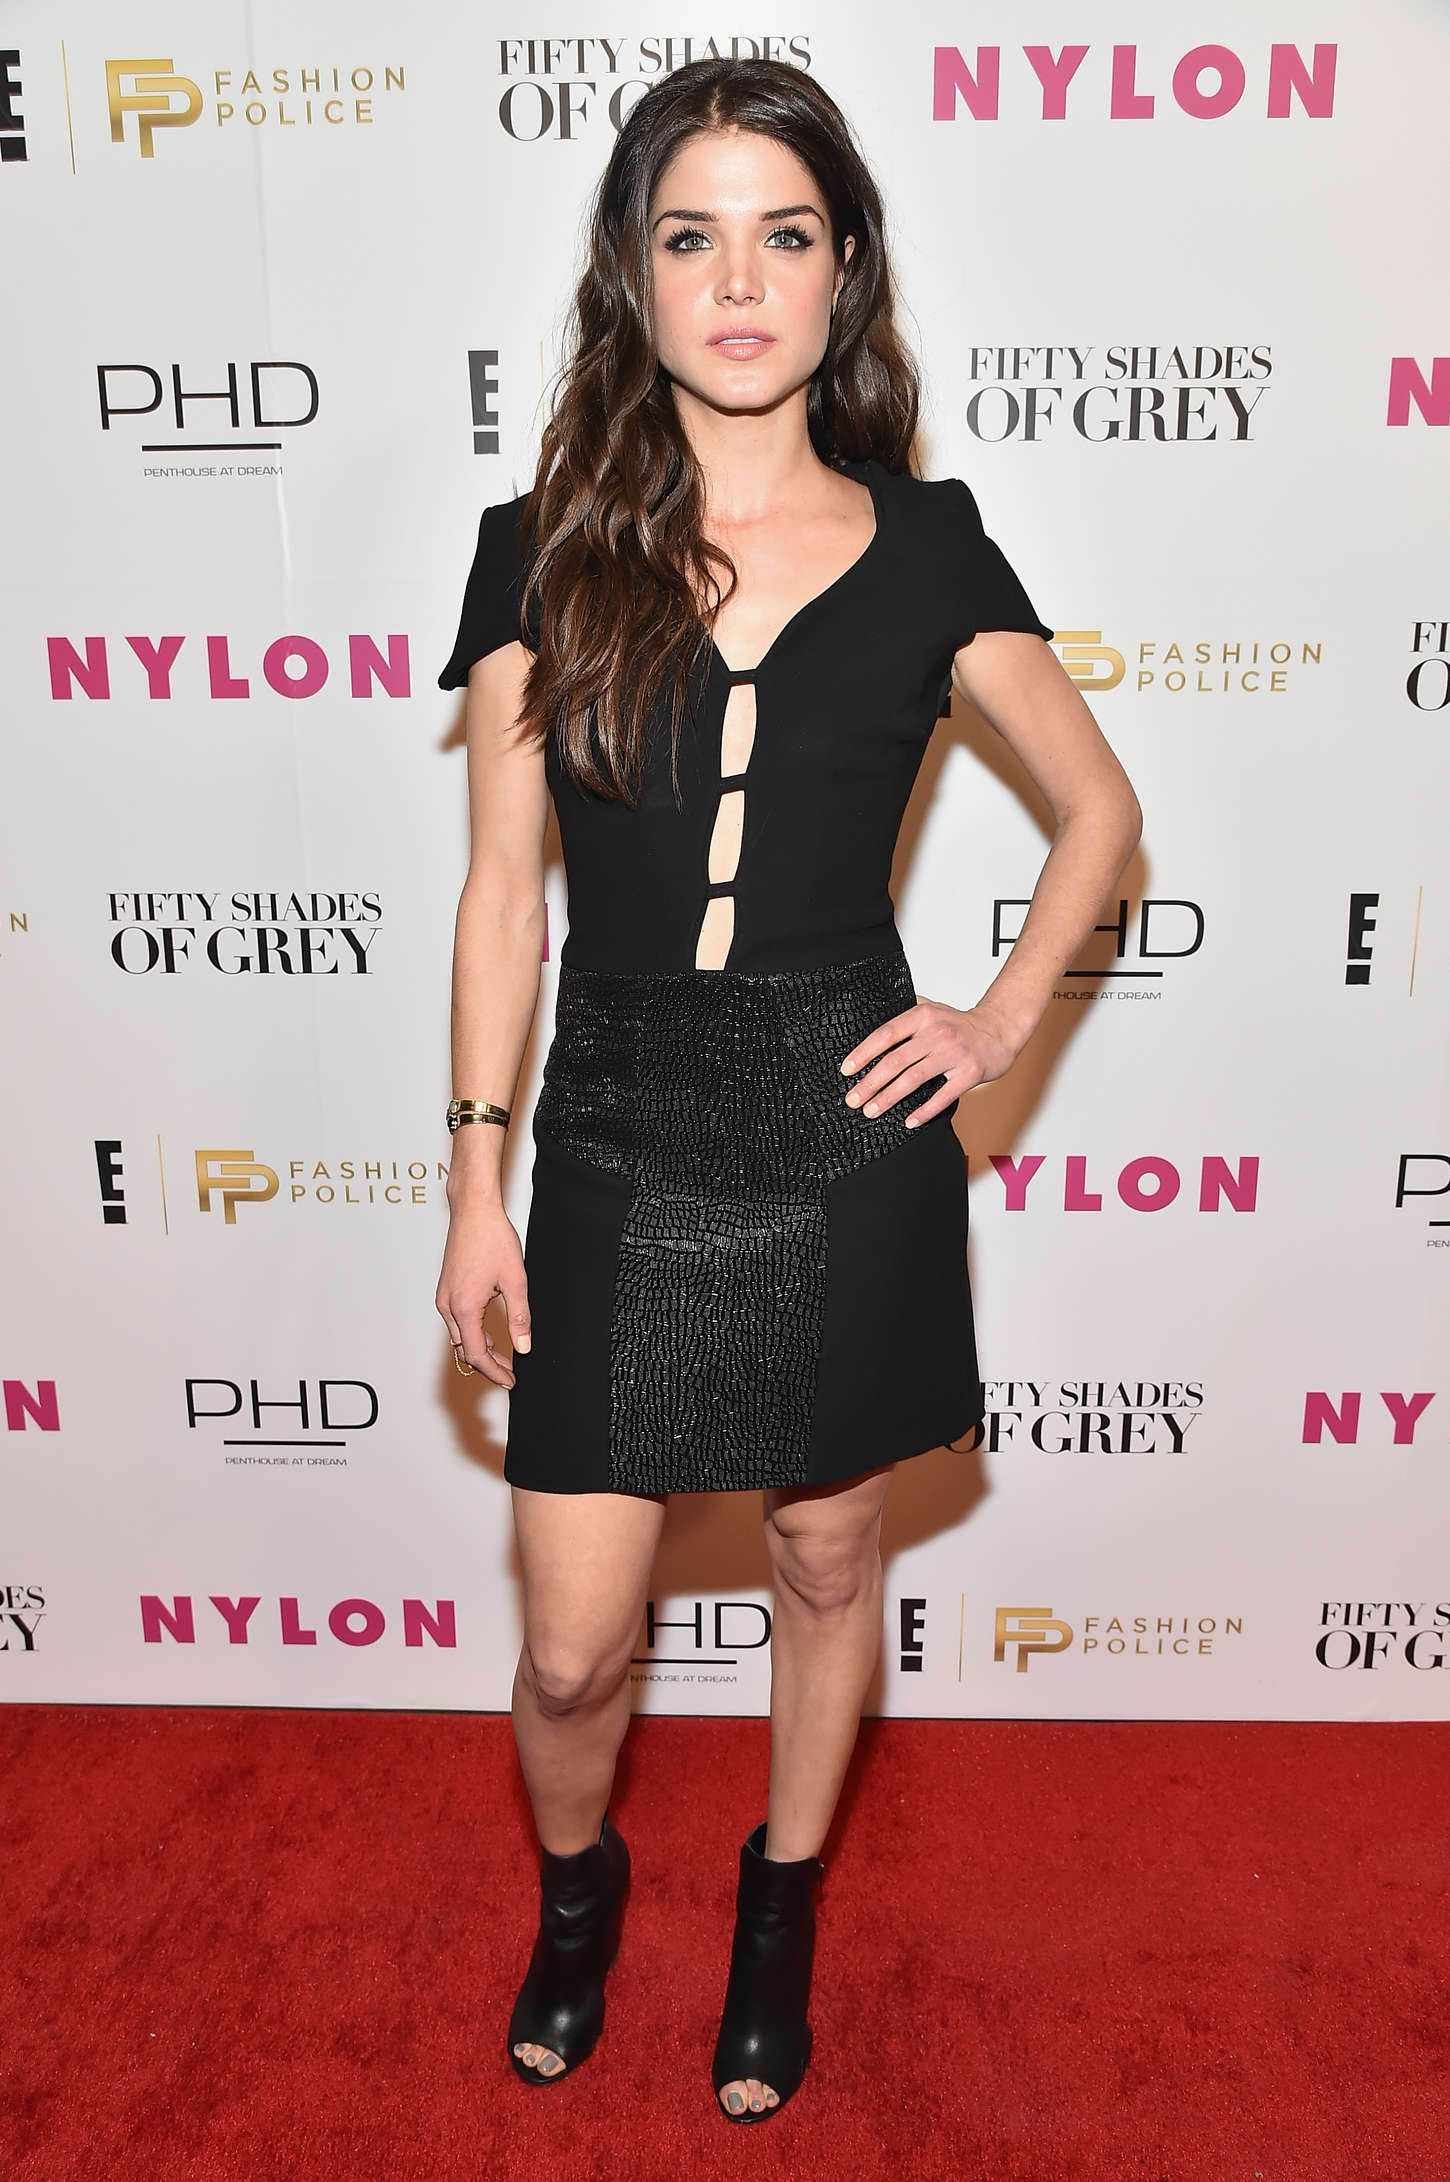 Marie Avgeropoulos New York Fashion Week Kickoff With Fifty Shades Of Fashion Event in New York